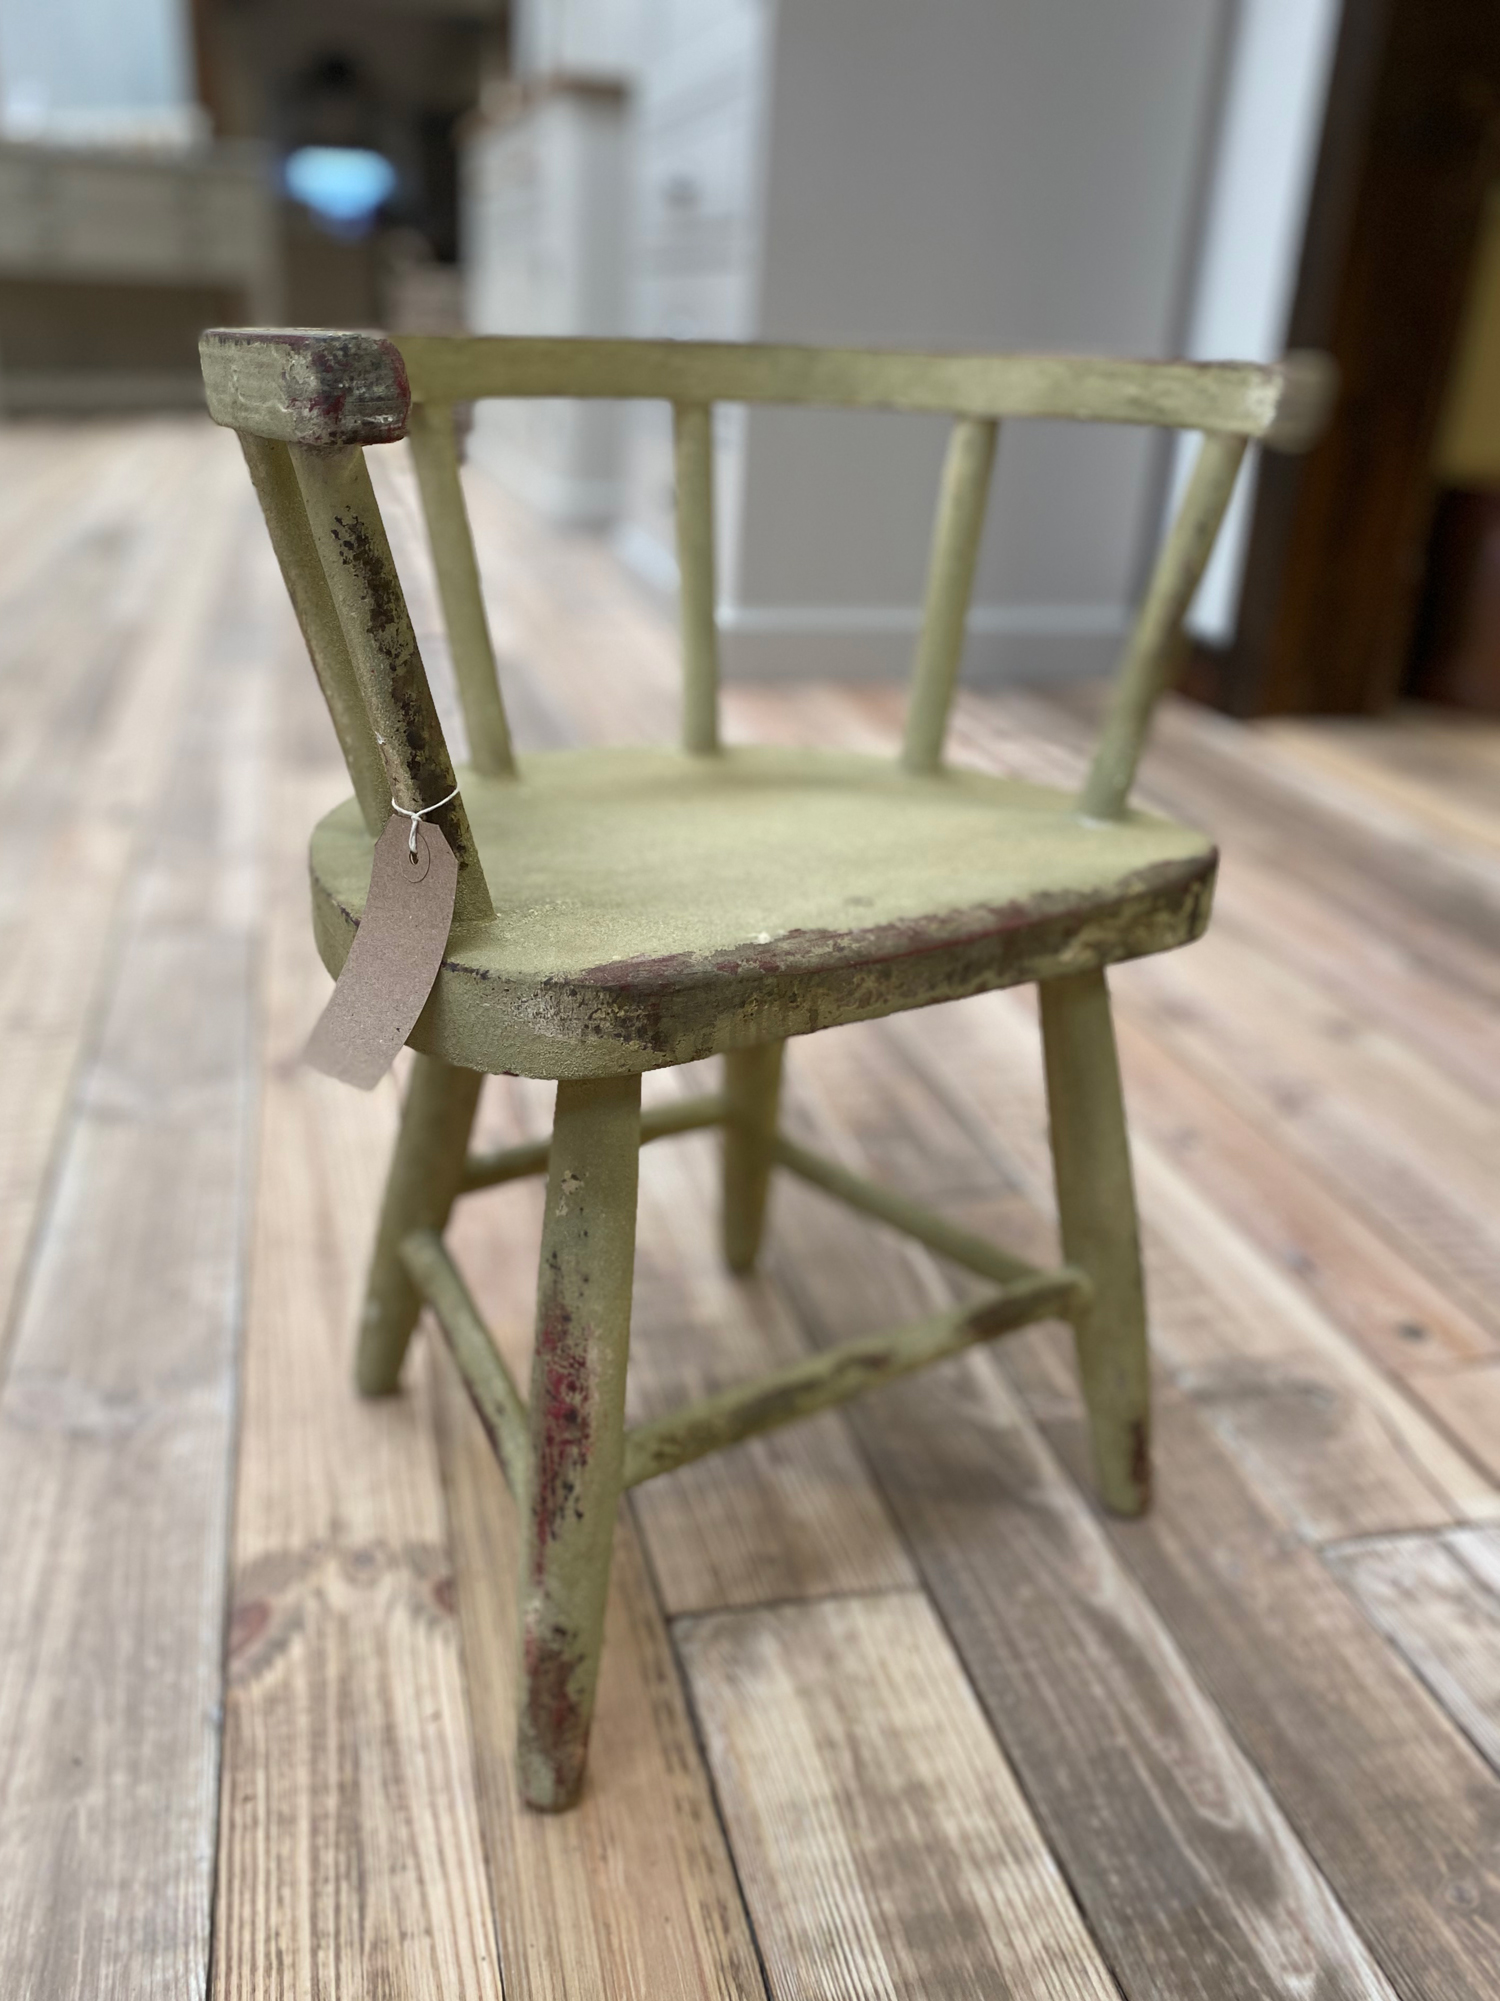 Rustic green crackled toddlers chair with curved back